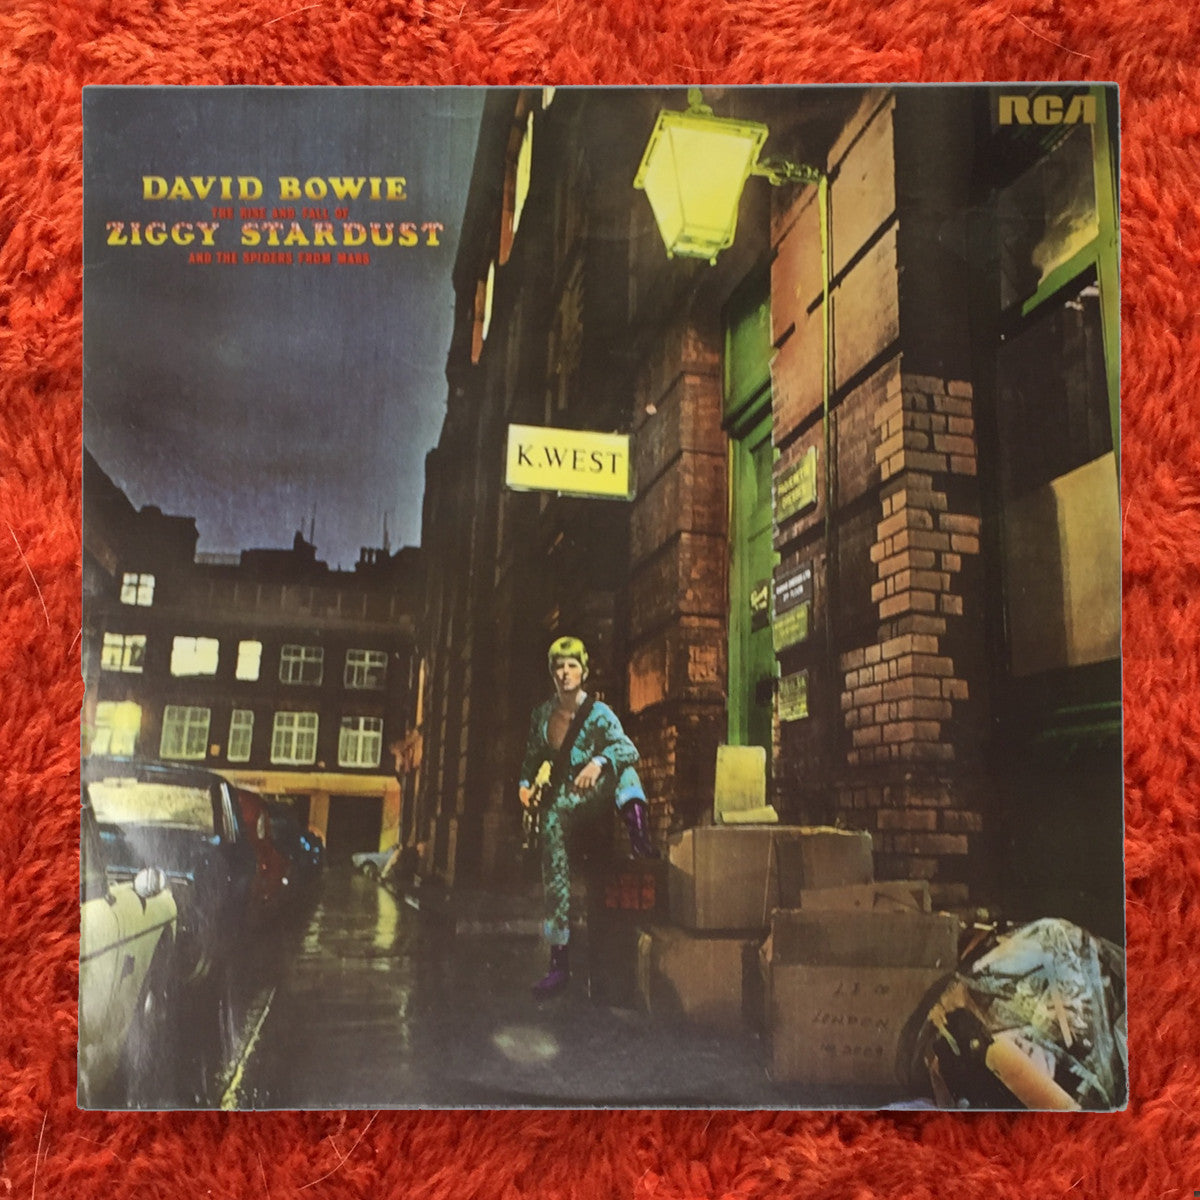 (bowie, david)   David Bowie [The Rise And Fall Of Ziggy Stardust And The  Spiders From Mars] '80s German Press